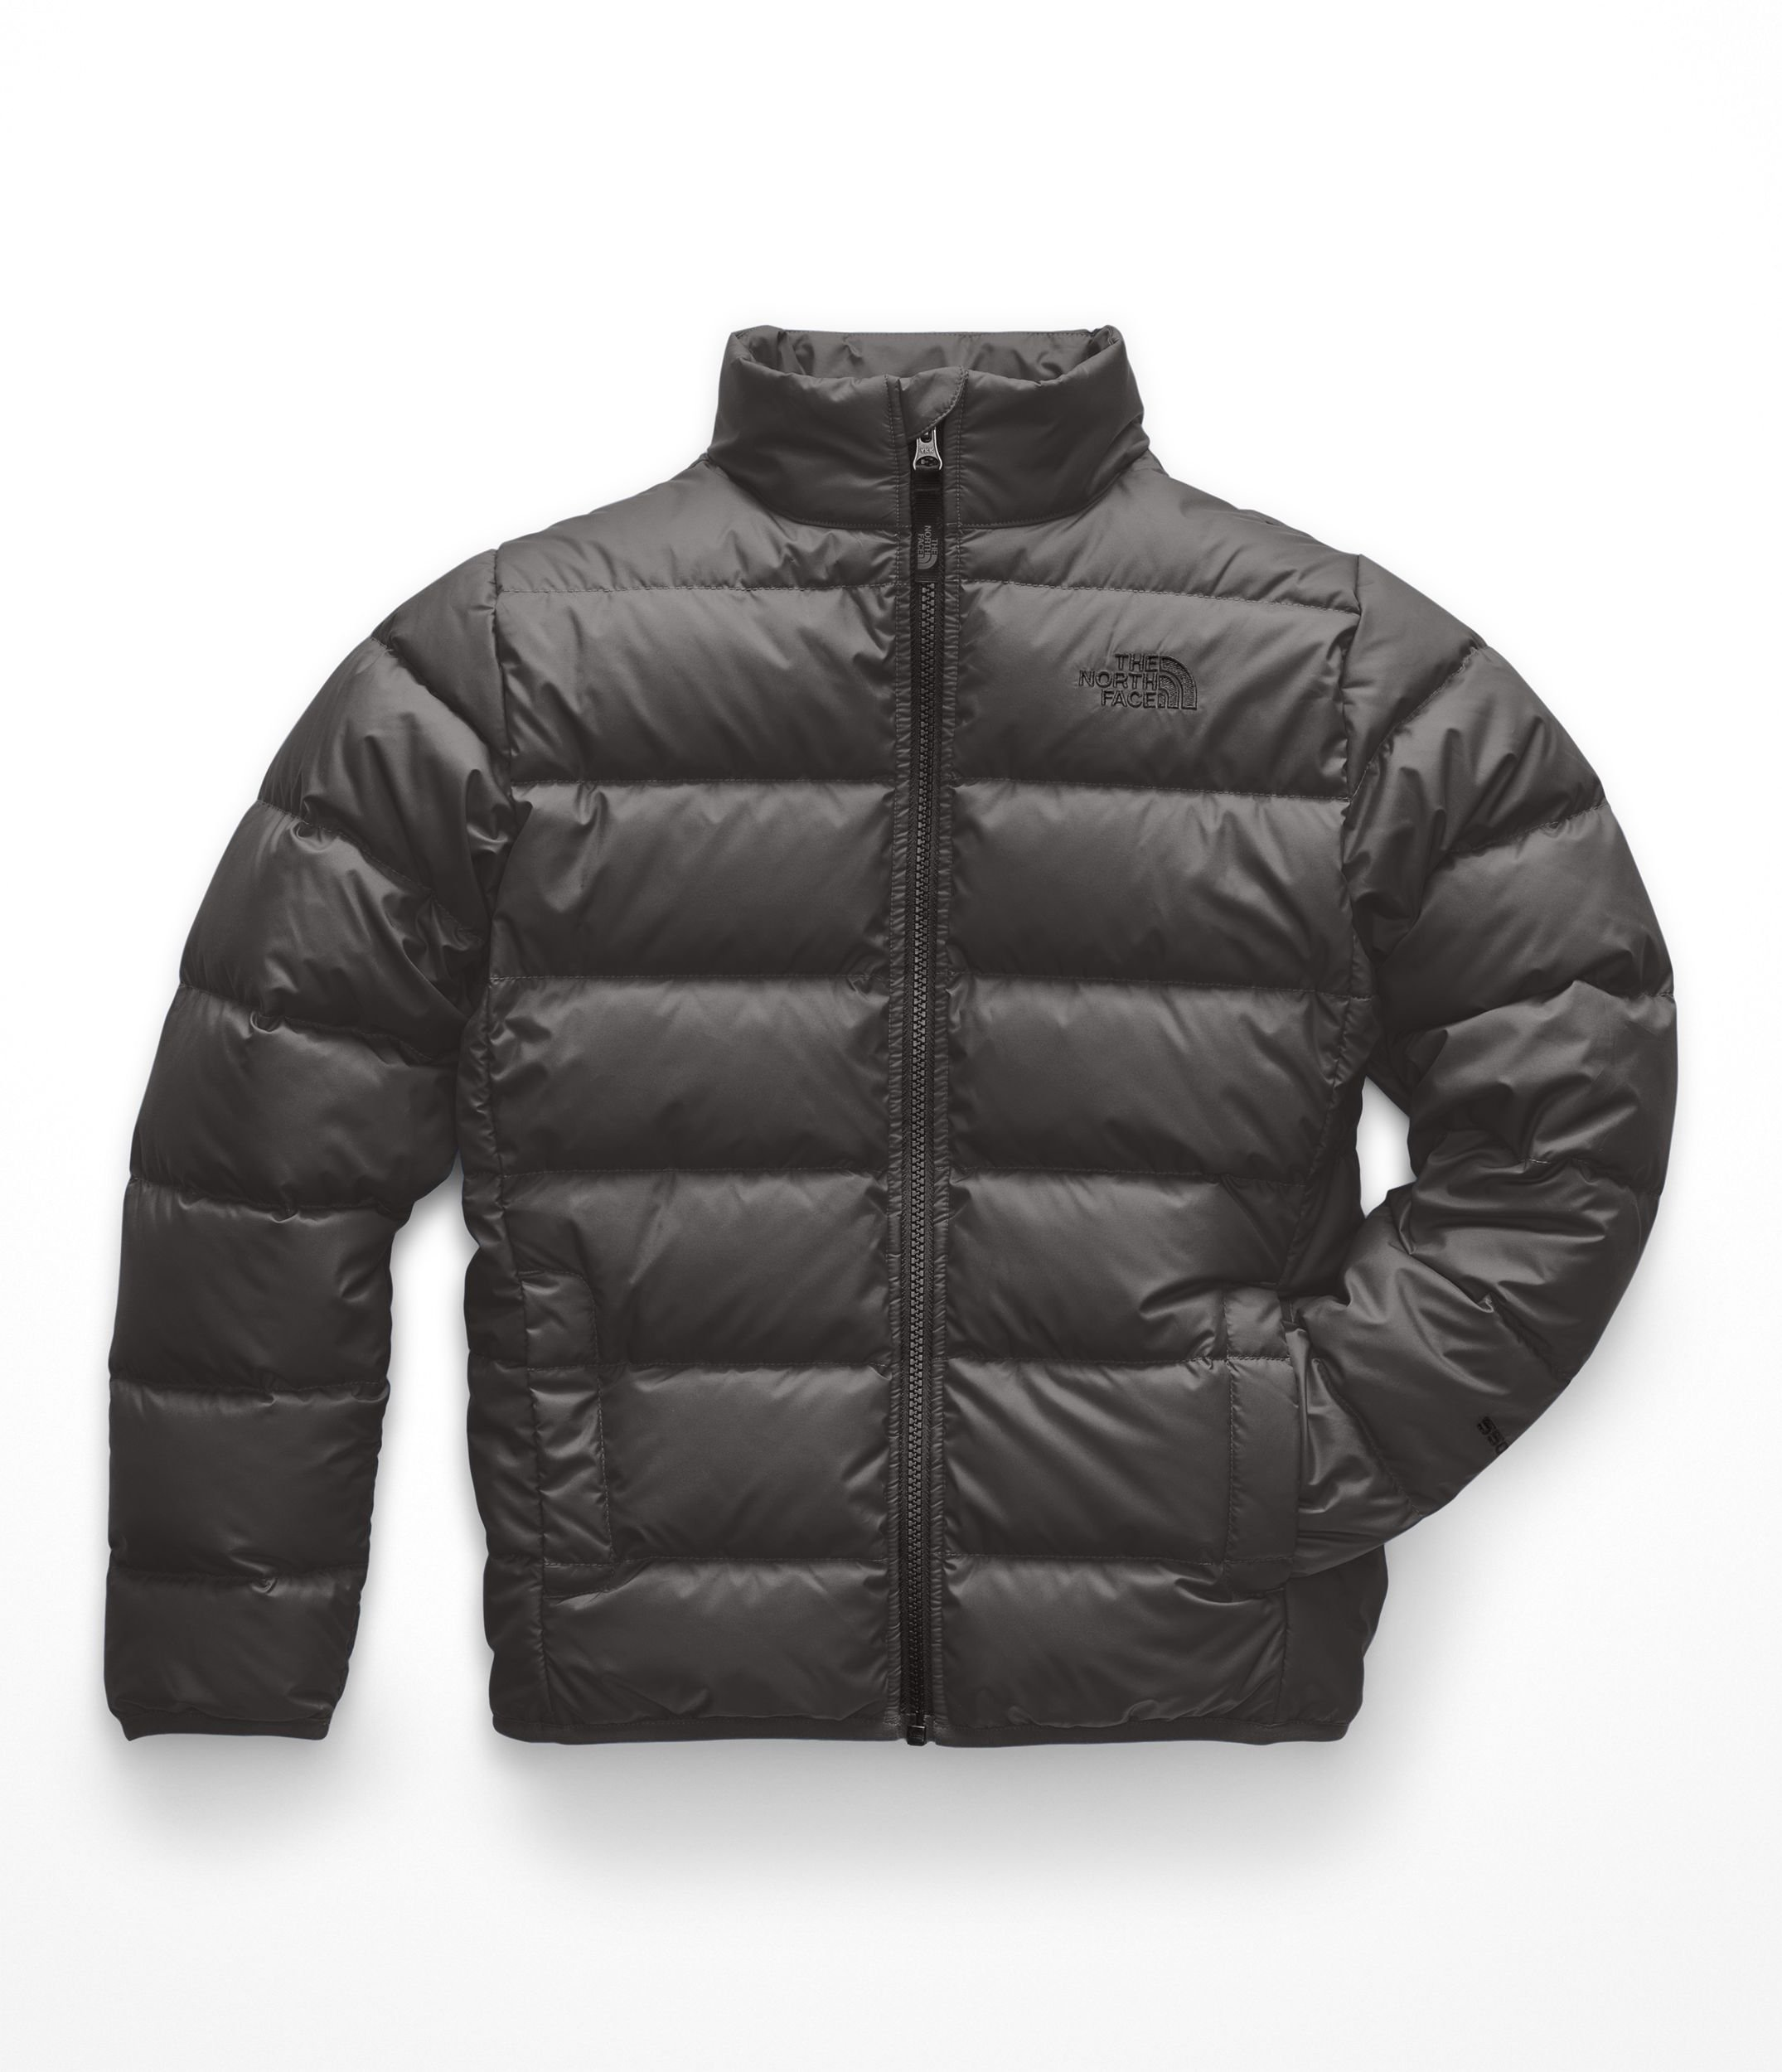 The North Face Boys Andes Jacket - Graphite Grey & TNF Black - S